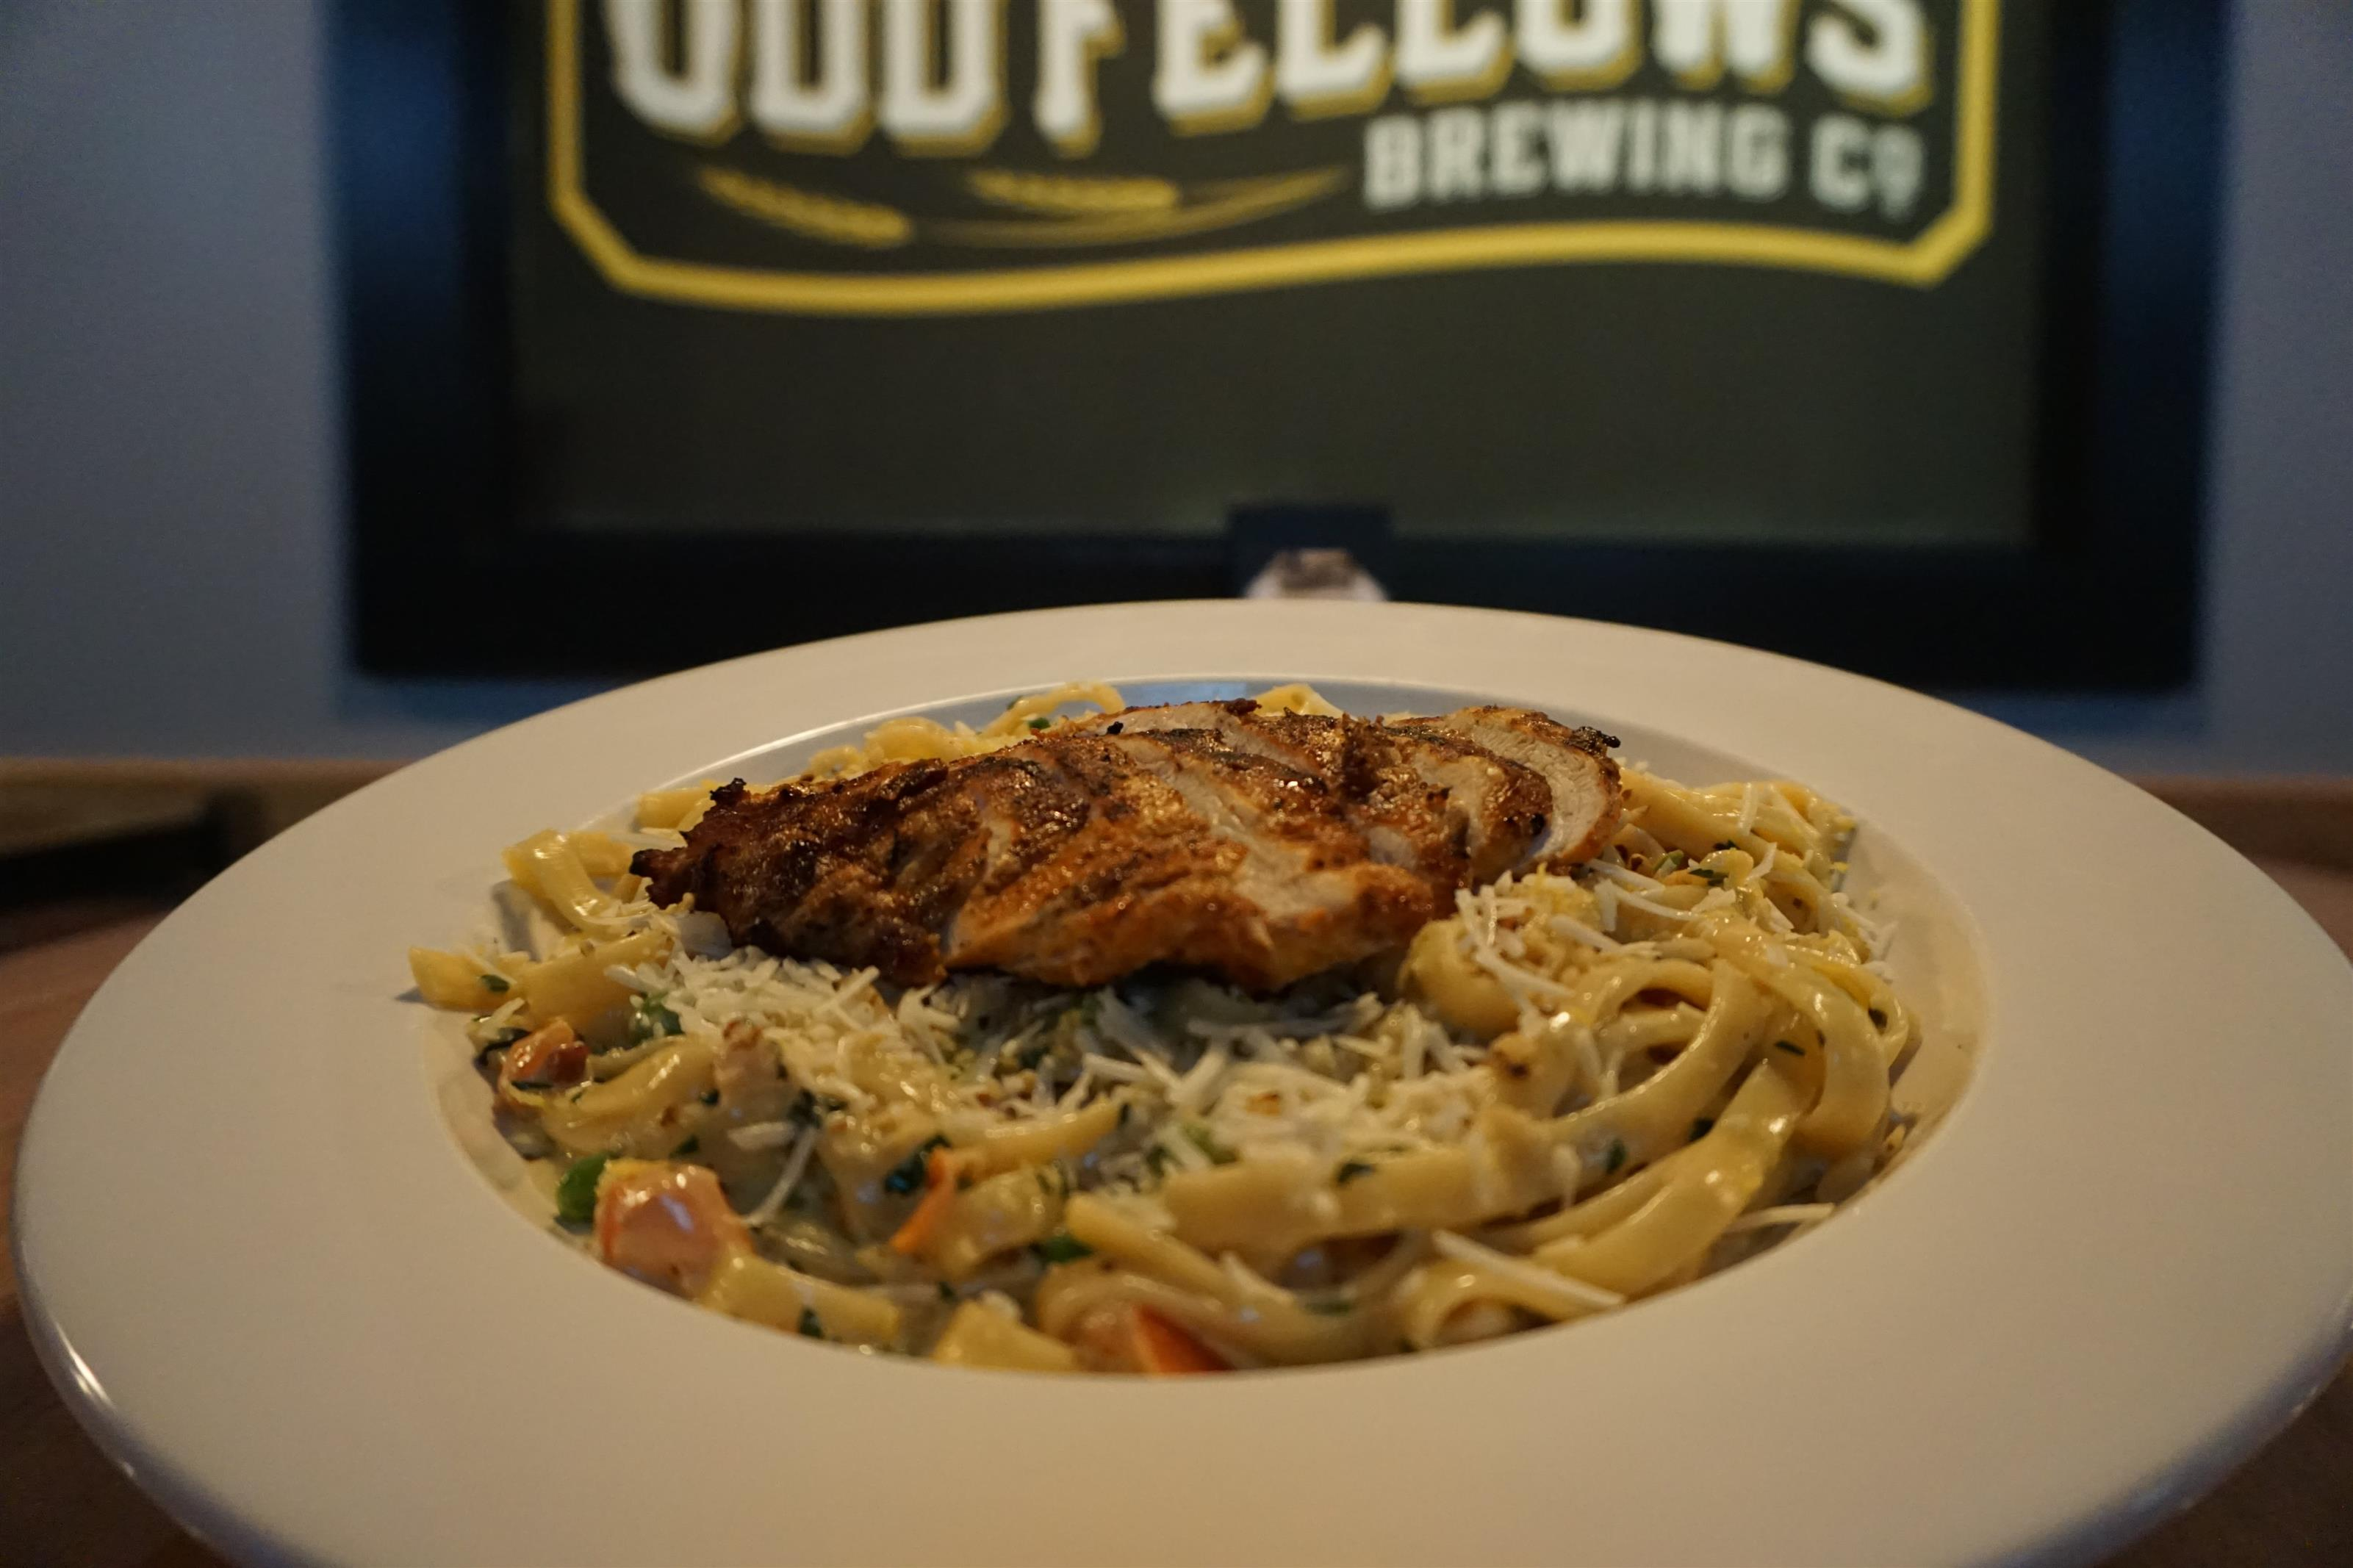 Linguine topped with grilled chicken and parmesan cheese